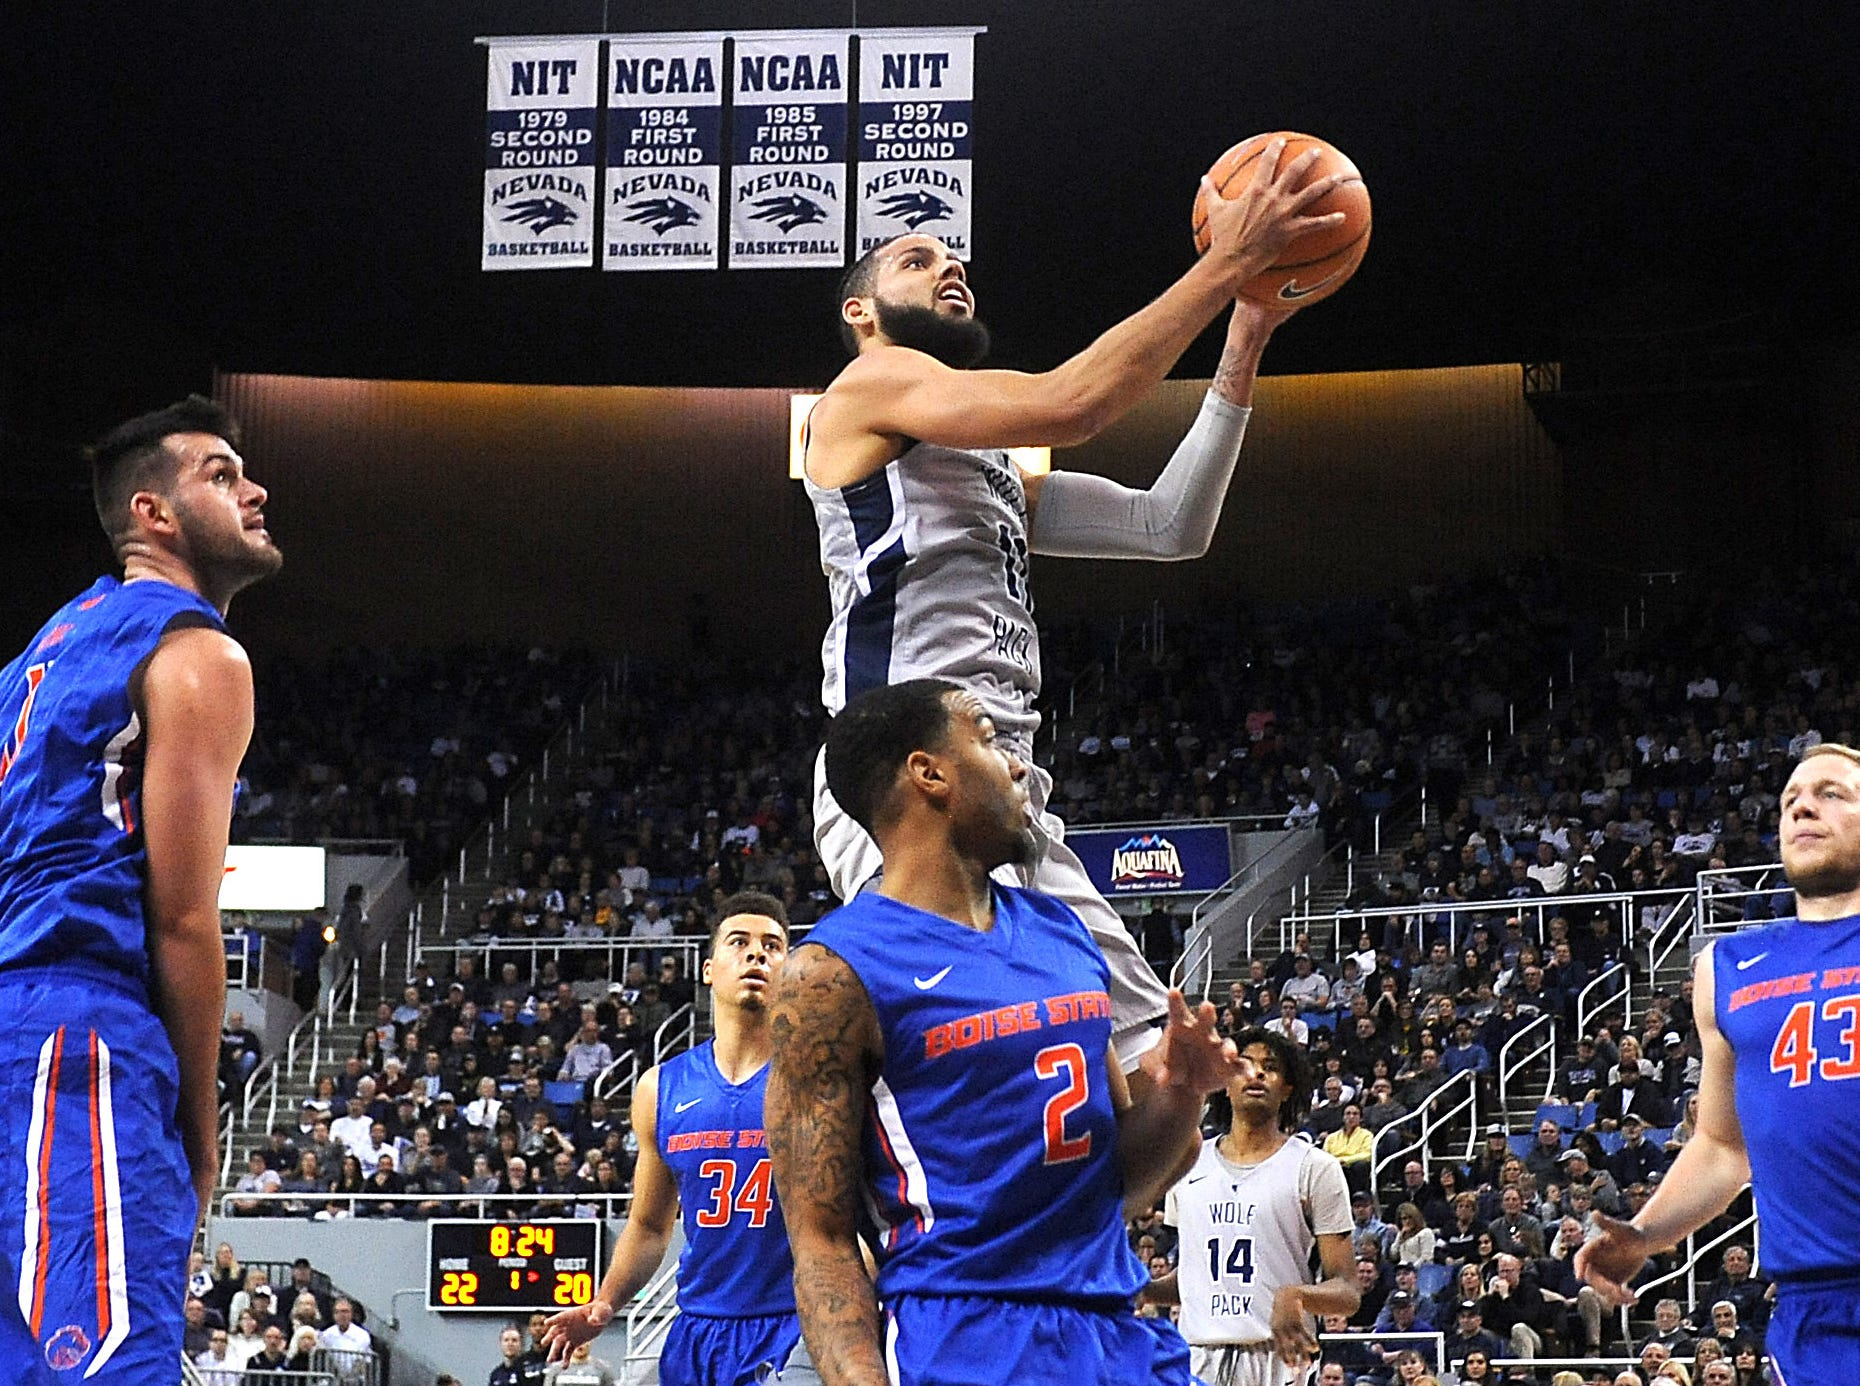 Nevada's Cody Martin (11) looks to shoot while taking on Boise State during their basketball game at Lawlor Events Center in Reno on Jan. 20, 2018.